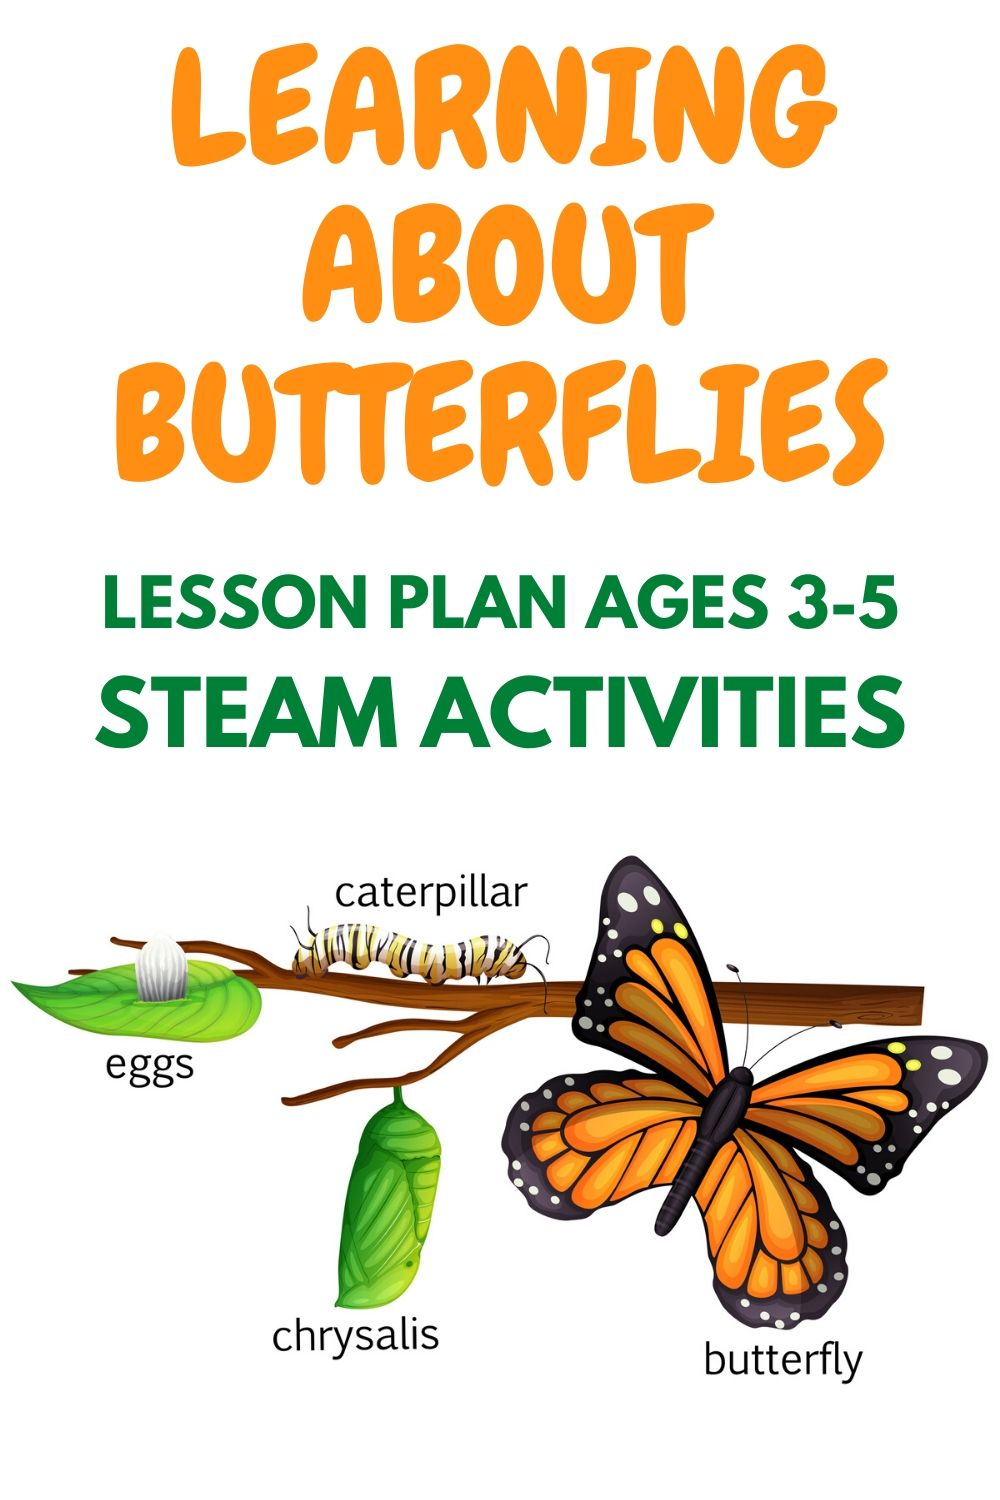 Life cycle of a butterfly lesson plan | Learning about butterflies | STEAM Activities, videos + links | butterfly lesson plans preschool | butterfly lesson plans for toddlers | learn about butterflies day | butterfly lesson plan for toddlers | #butterflycraft #butterflylessonplan #learningaboutbutterflies